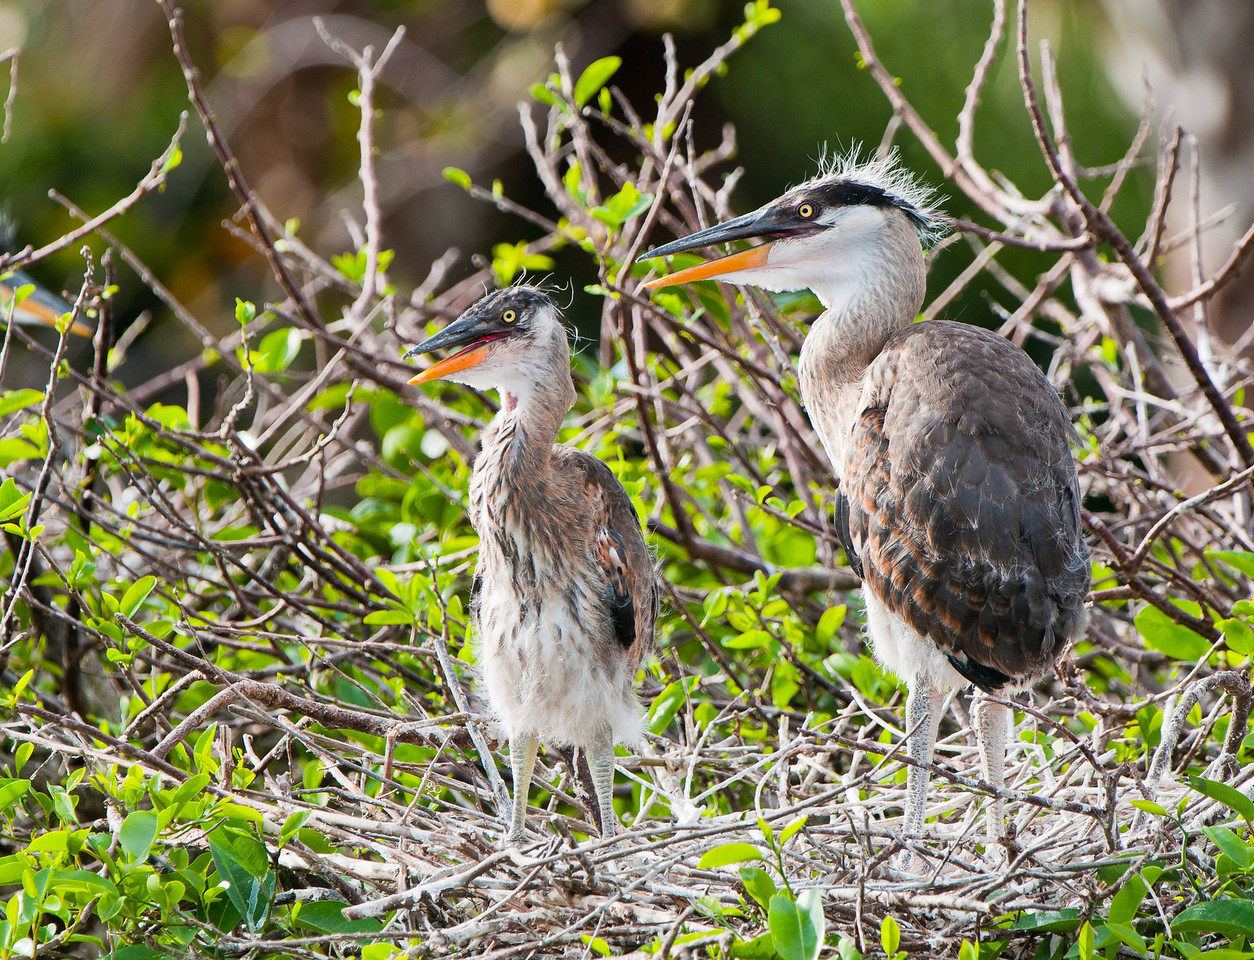 Great Blue Heron Twins, shown here standing at age 7 weeks.  They have been alone for nearly 4 hours and are getting restless. Mom still had not returned when it started to pour rain and I left.